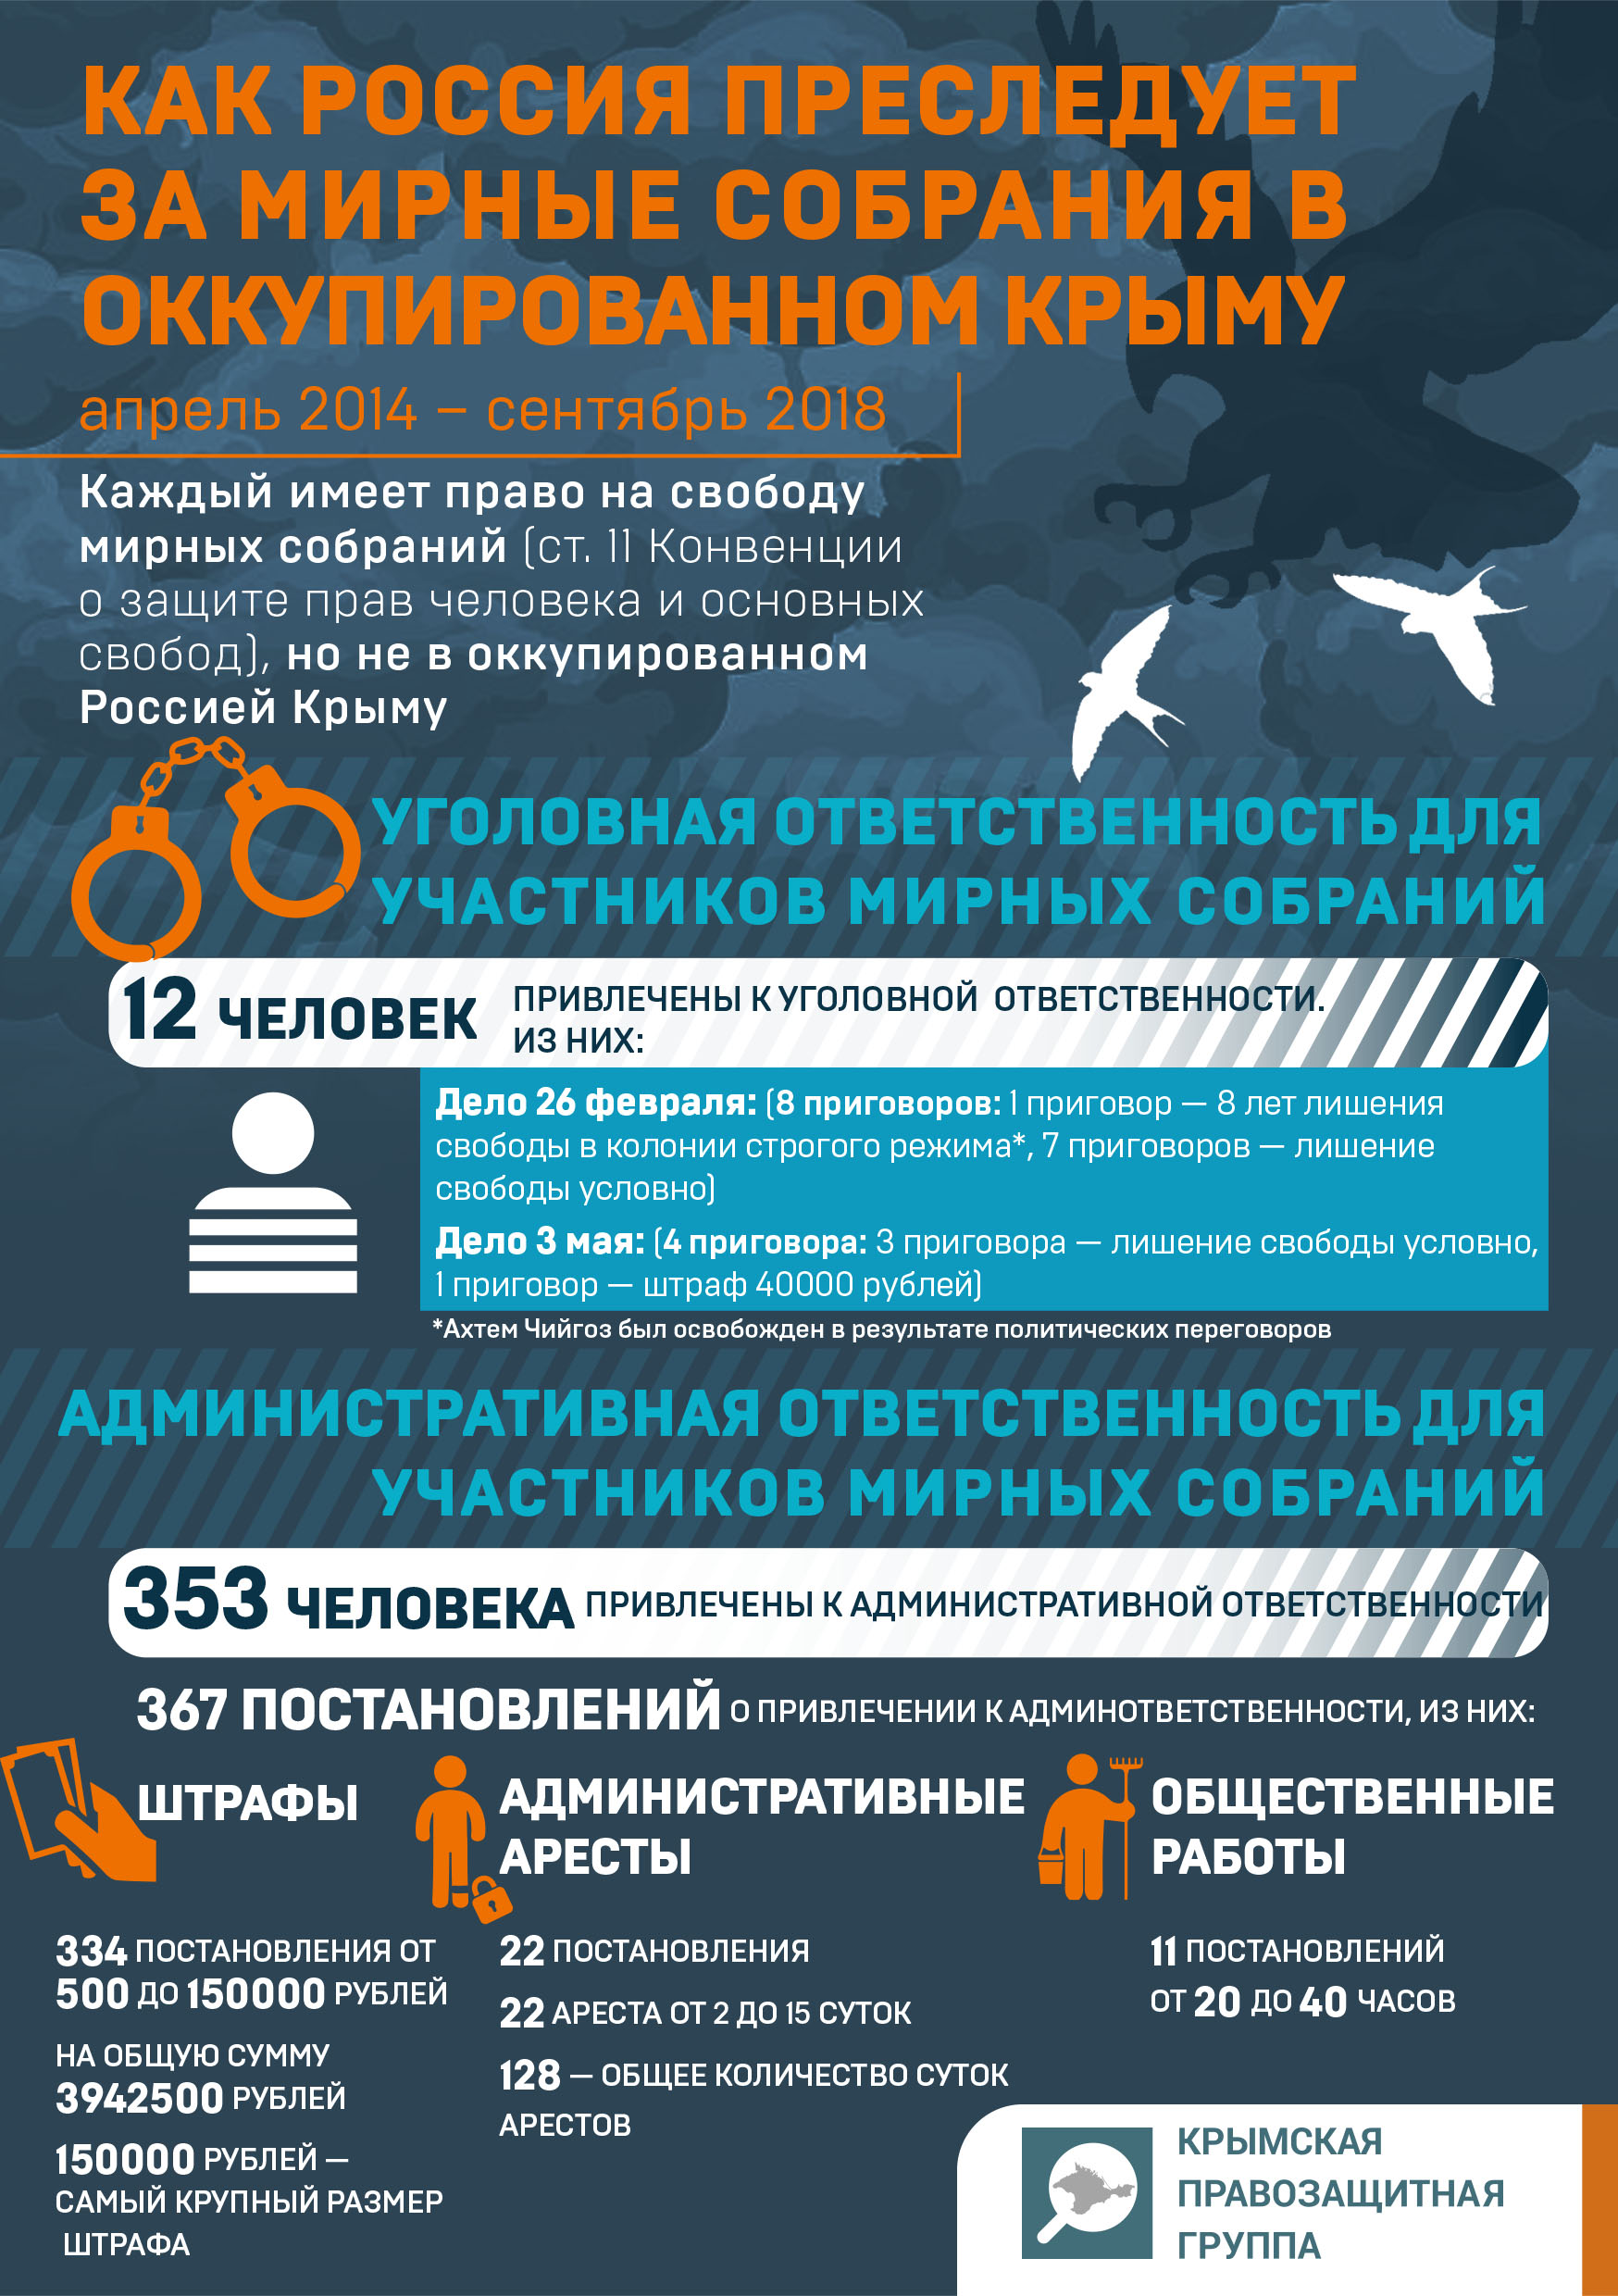 How does Russia persecute for peaceful assemblies in the occupied Crimea (infographic)